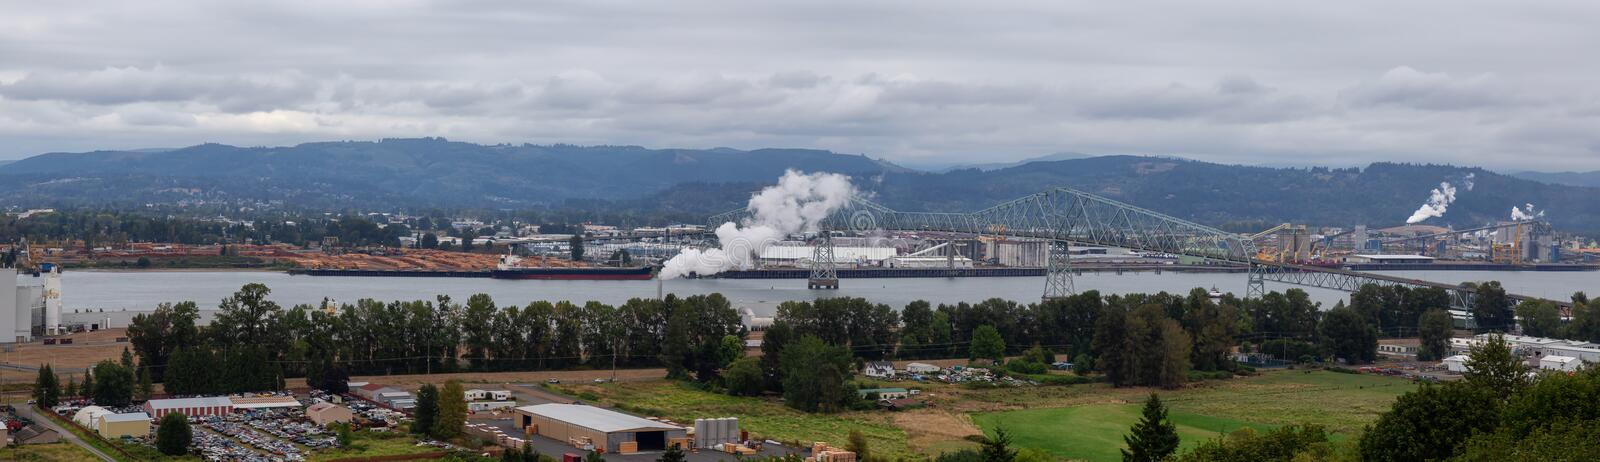 Longview, Washington, United States of America. Aerial Panoramic View of Port, Industrial Sites and Lewis and Clark Bridge over Columbia River stock image